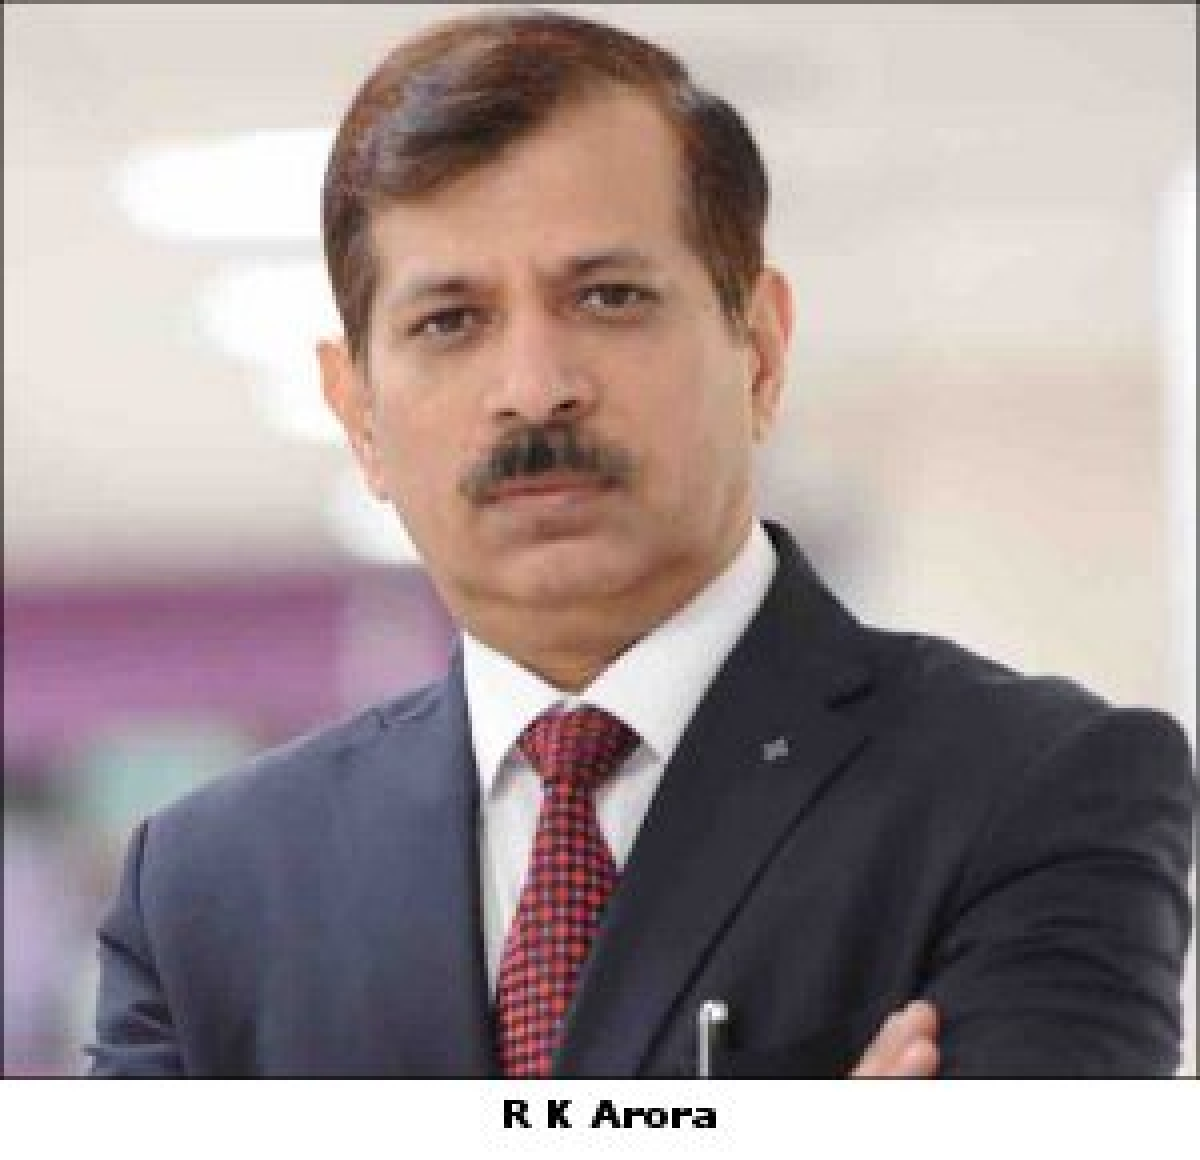 ZMCL CEO and executive director R K Arora calls it a day